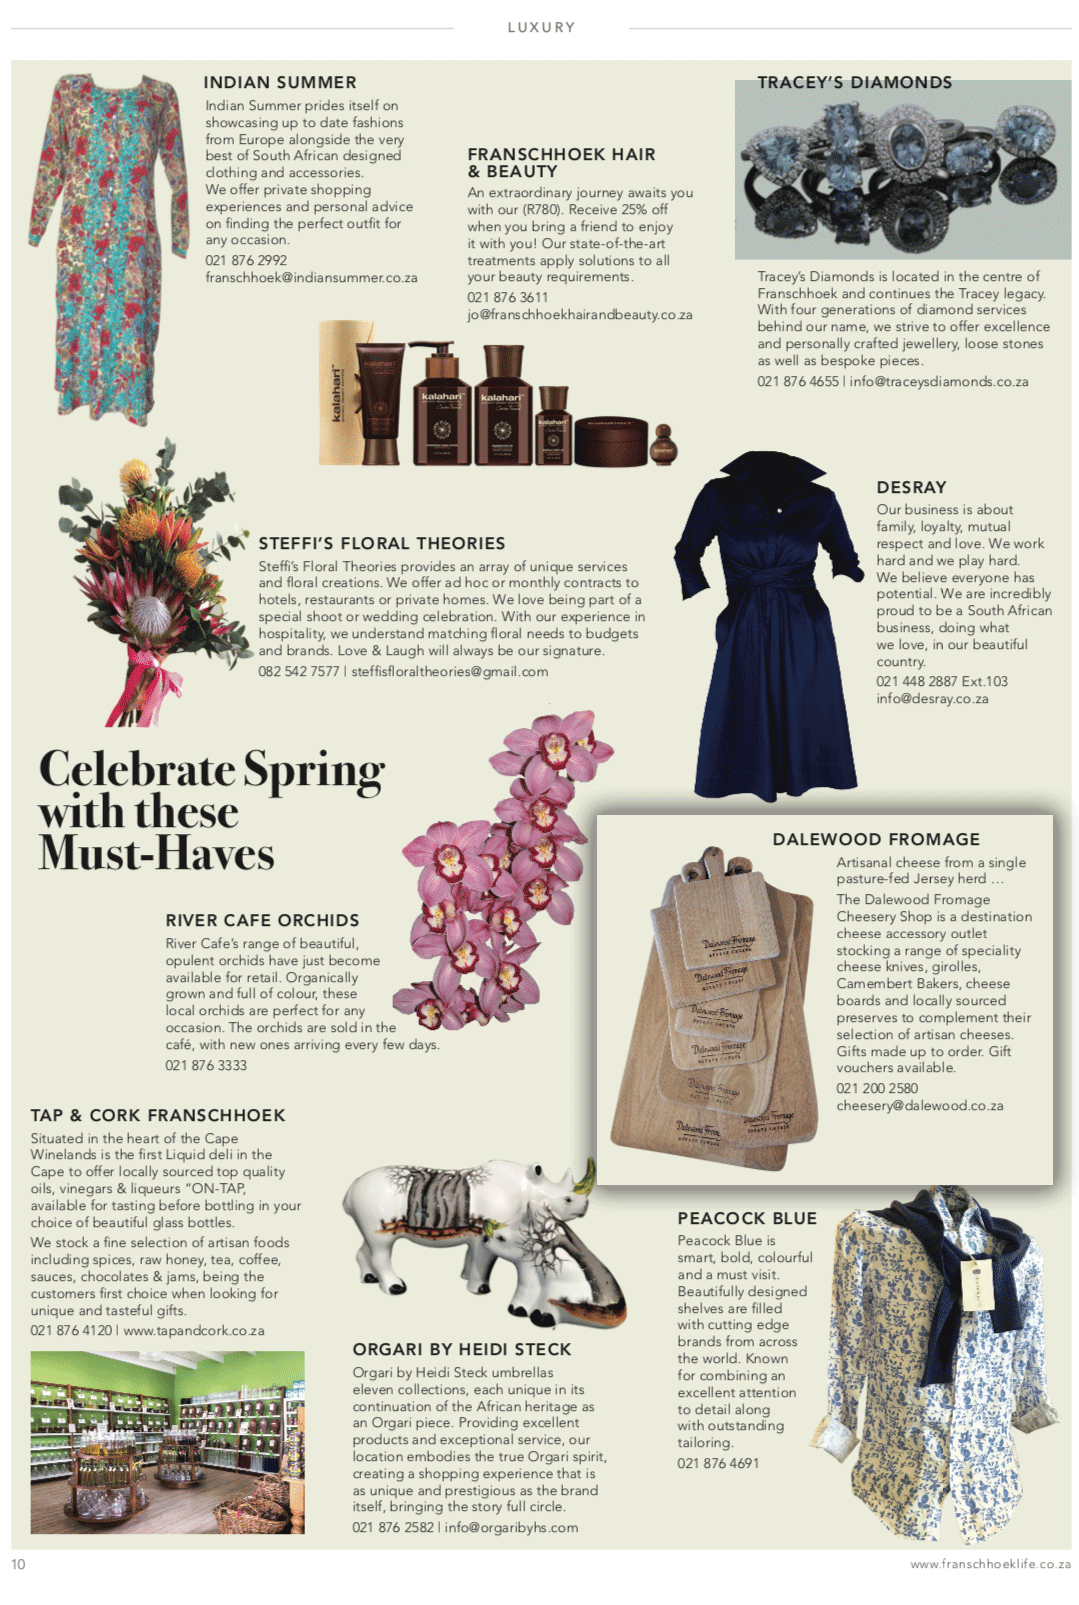 Franschhoek Life-Spring Celebration page September 2018